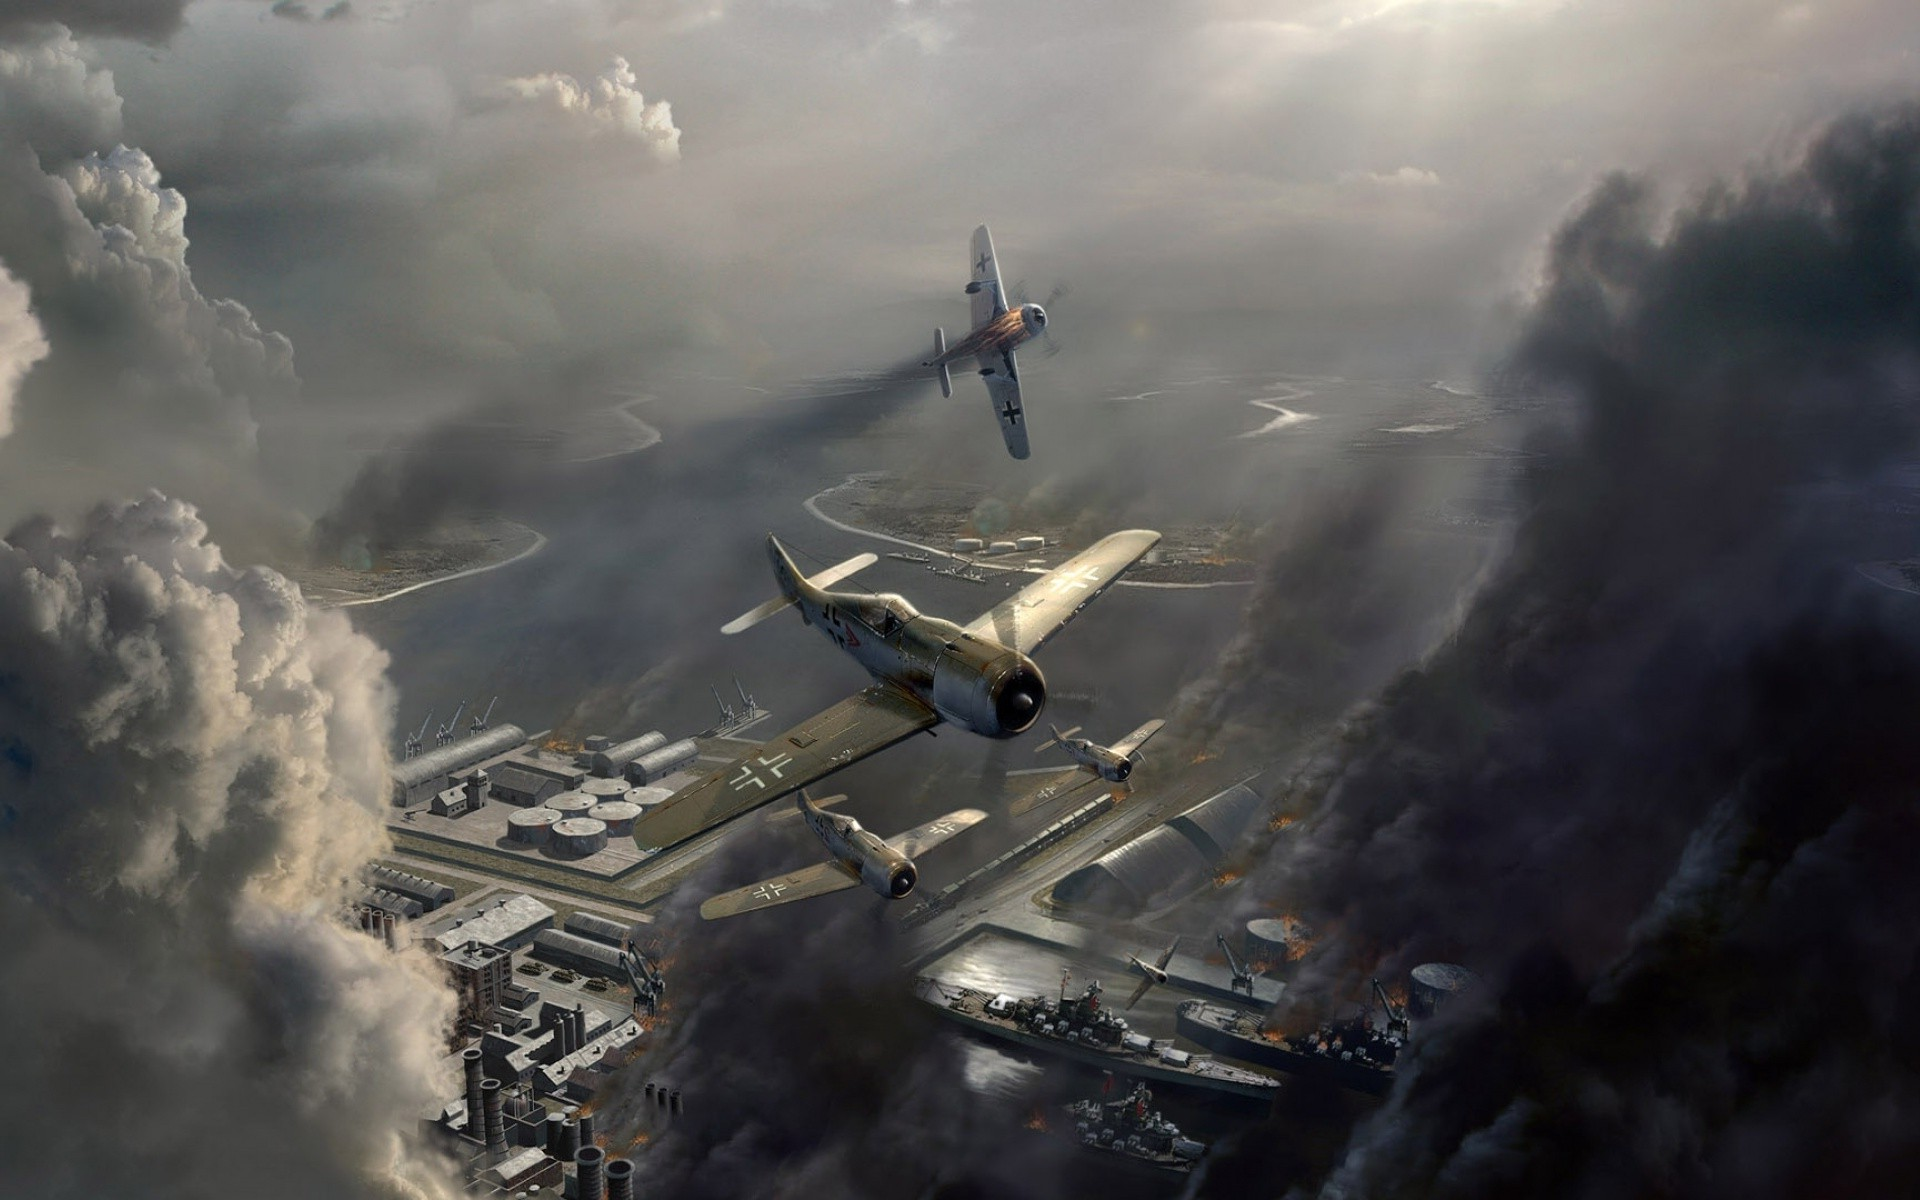 3d Call Of Duty 2 Wallpaper Airplane Video Games Fw 190 Wallpapers Hd Desktop And